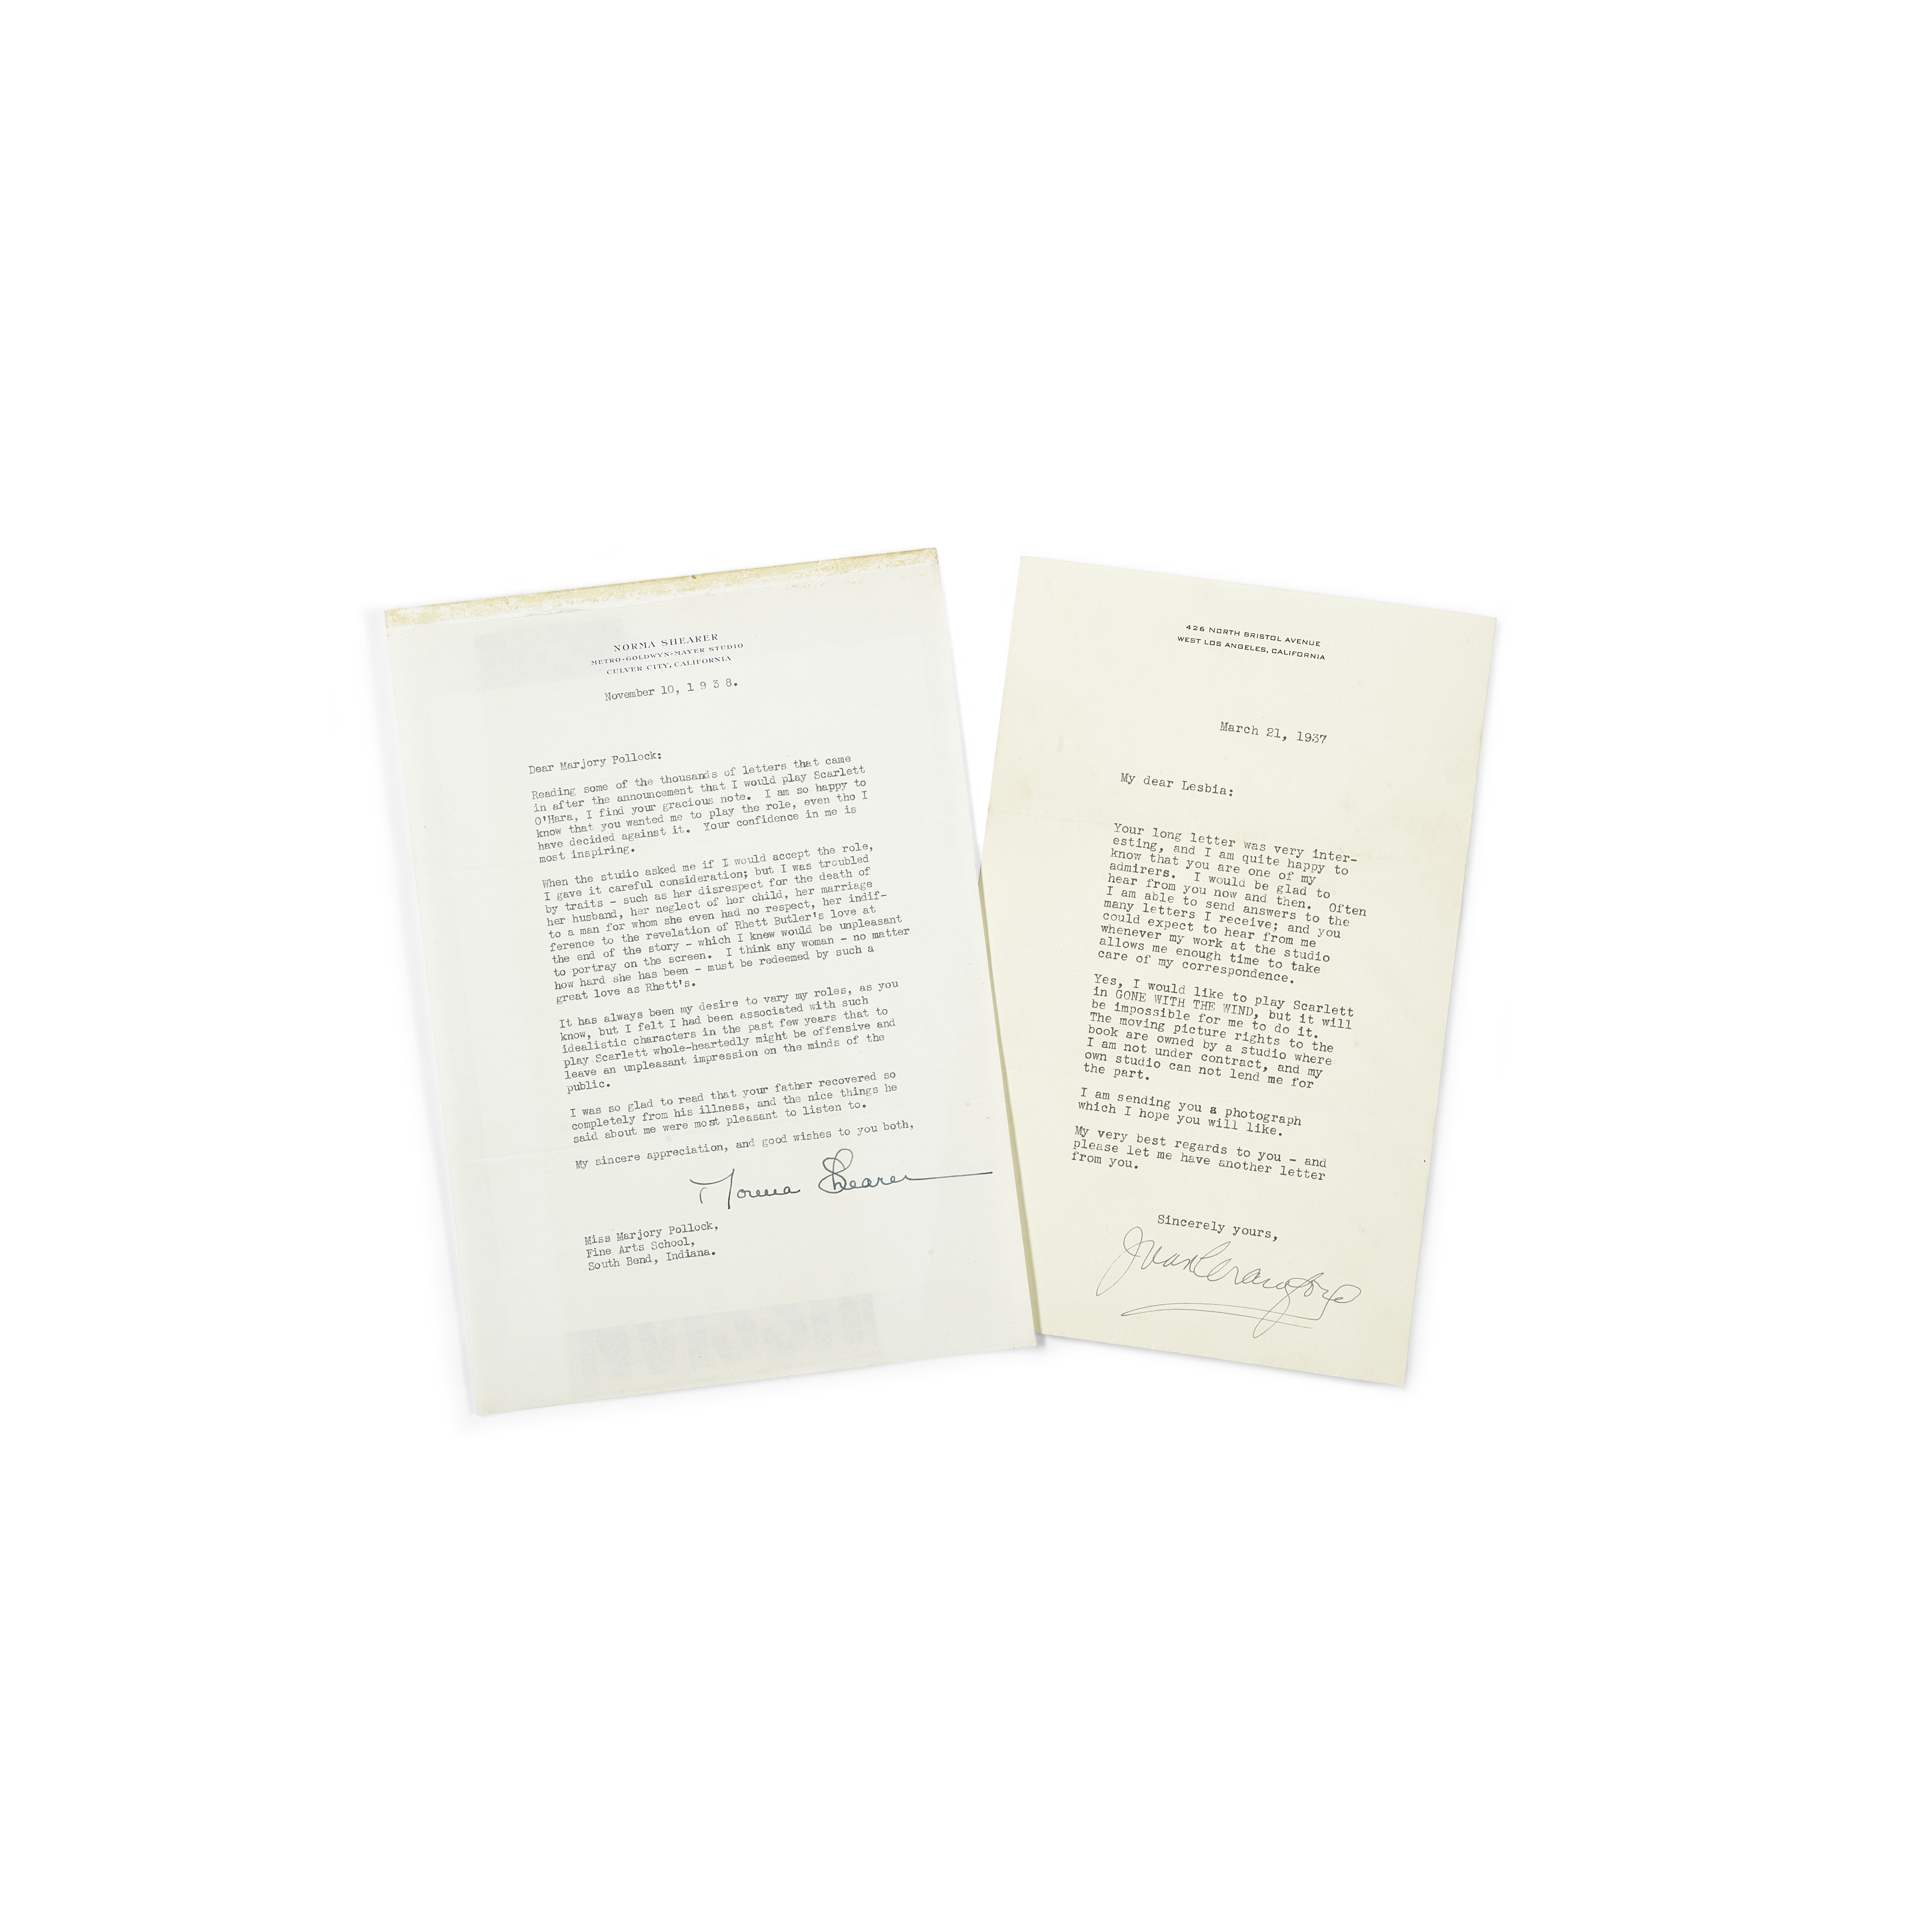 Lot 1035 - Joan Crawford and Norma Shearer signed letters pertaining to Gone With the Wind